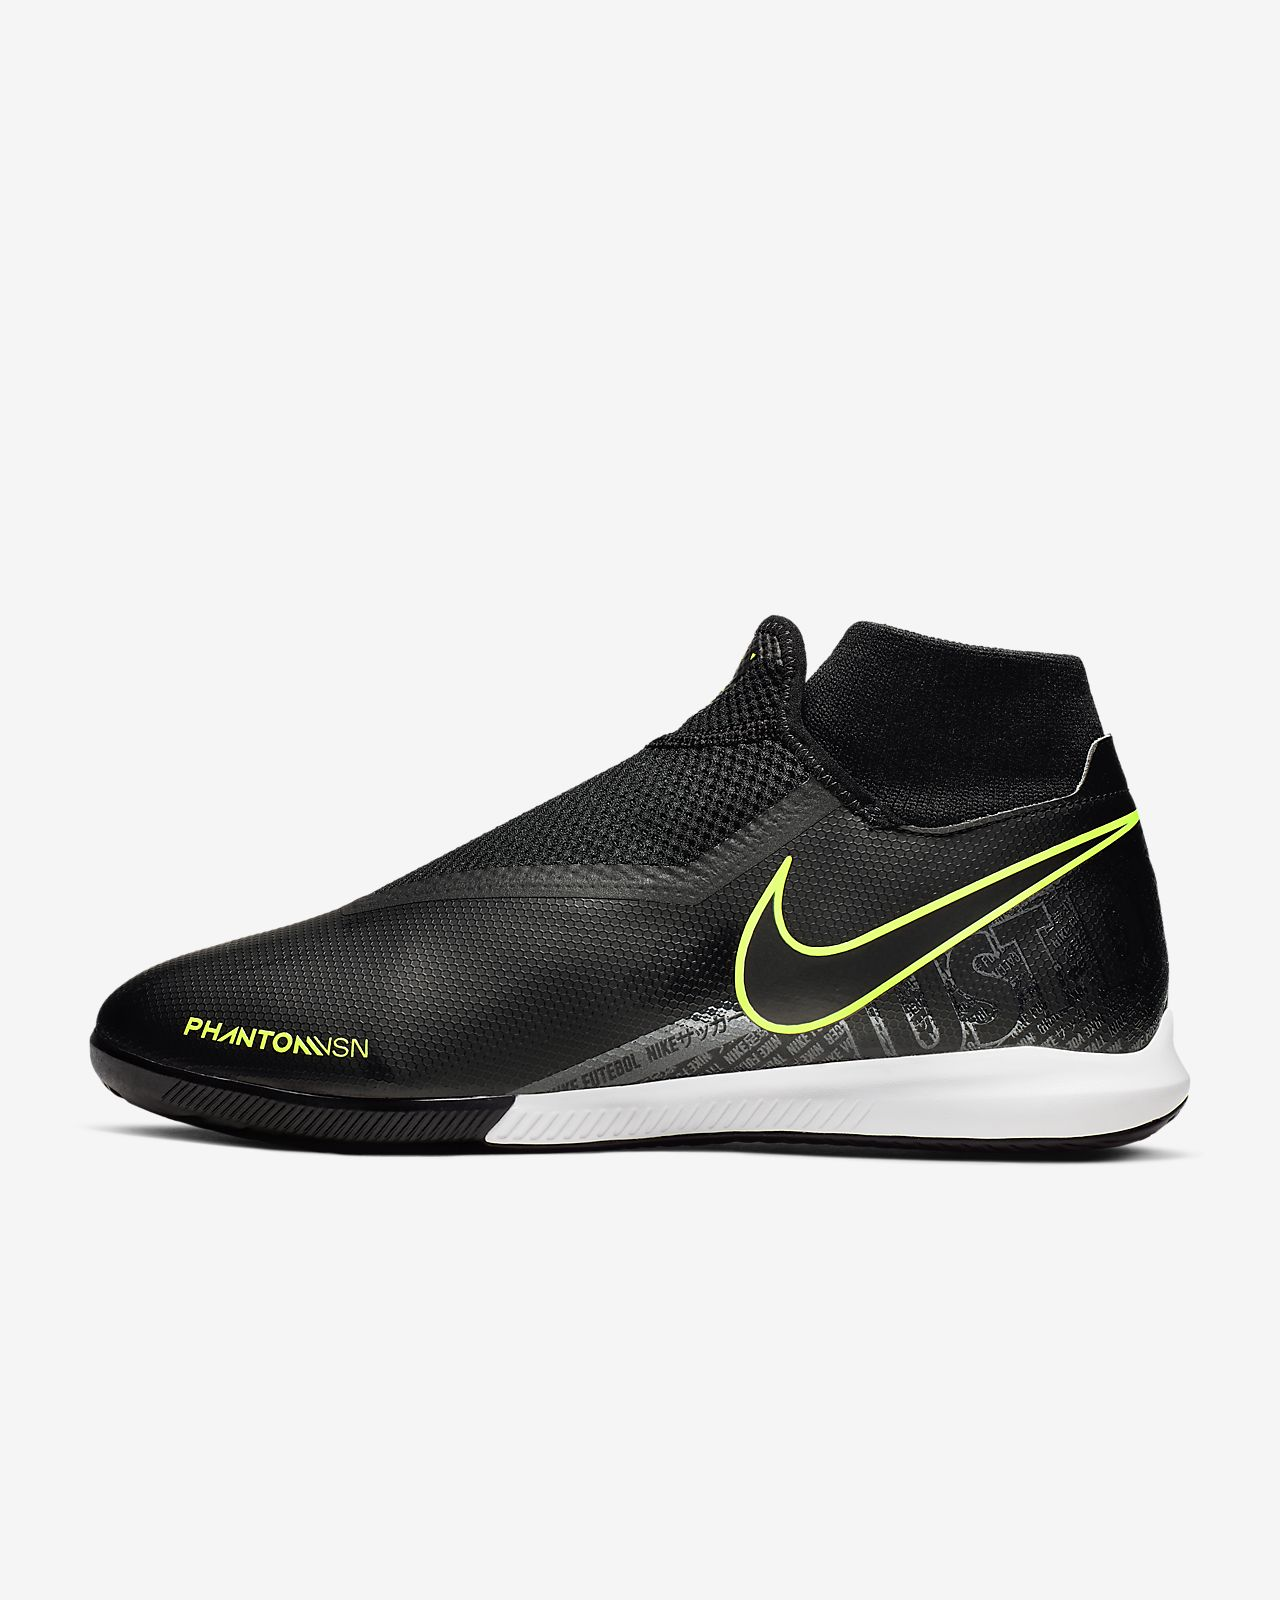 0d4106908be Nike Phantom Vision Academy Dynamic Fit IC Indoor/Court Soccer Shoe